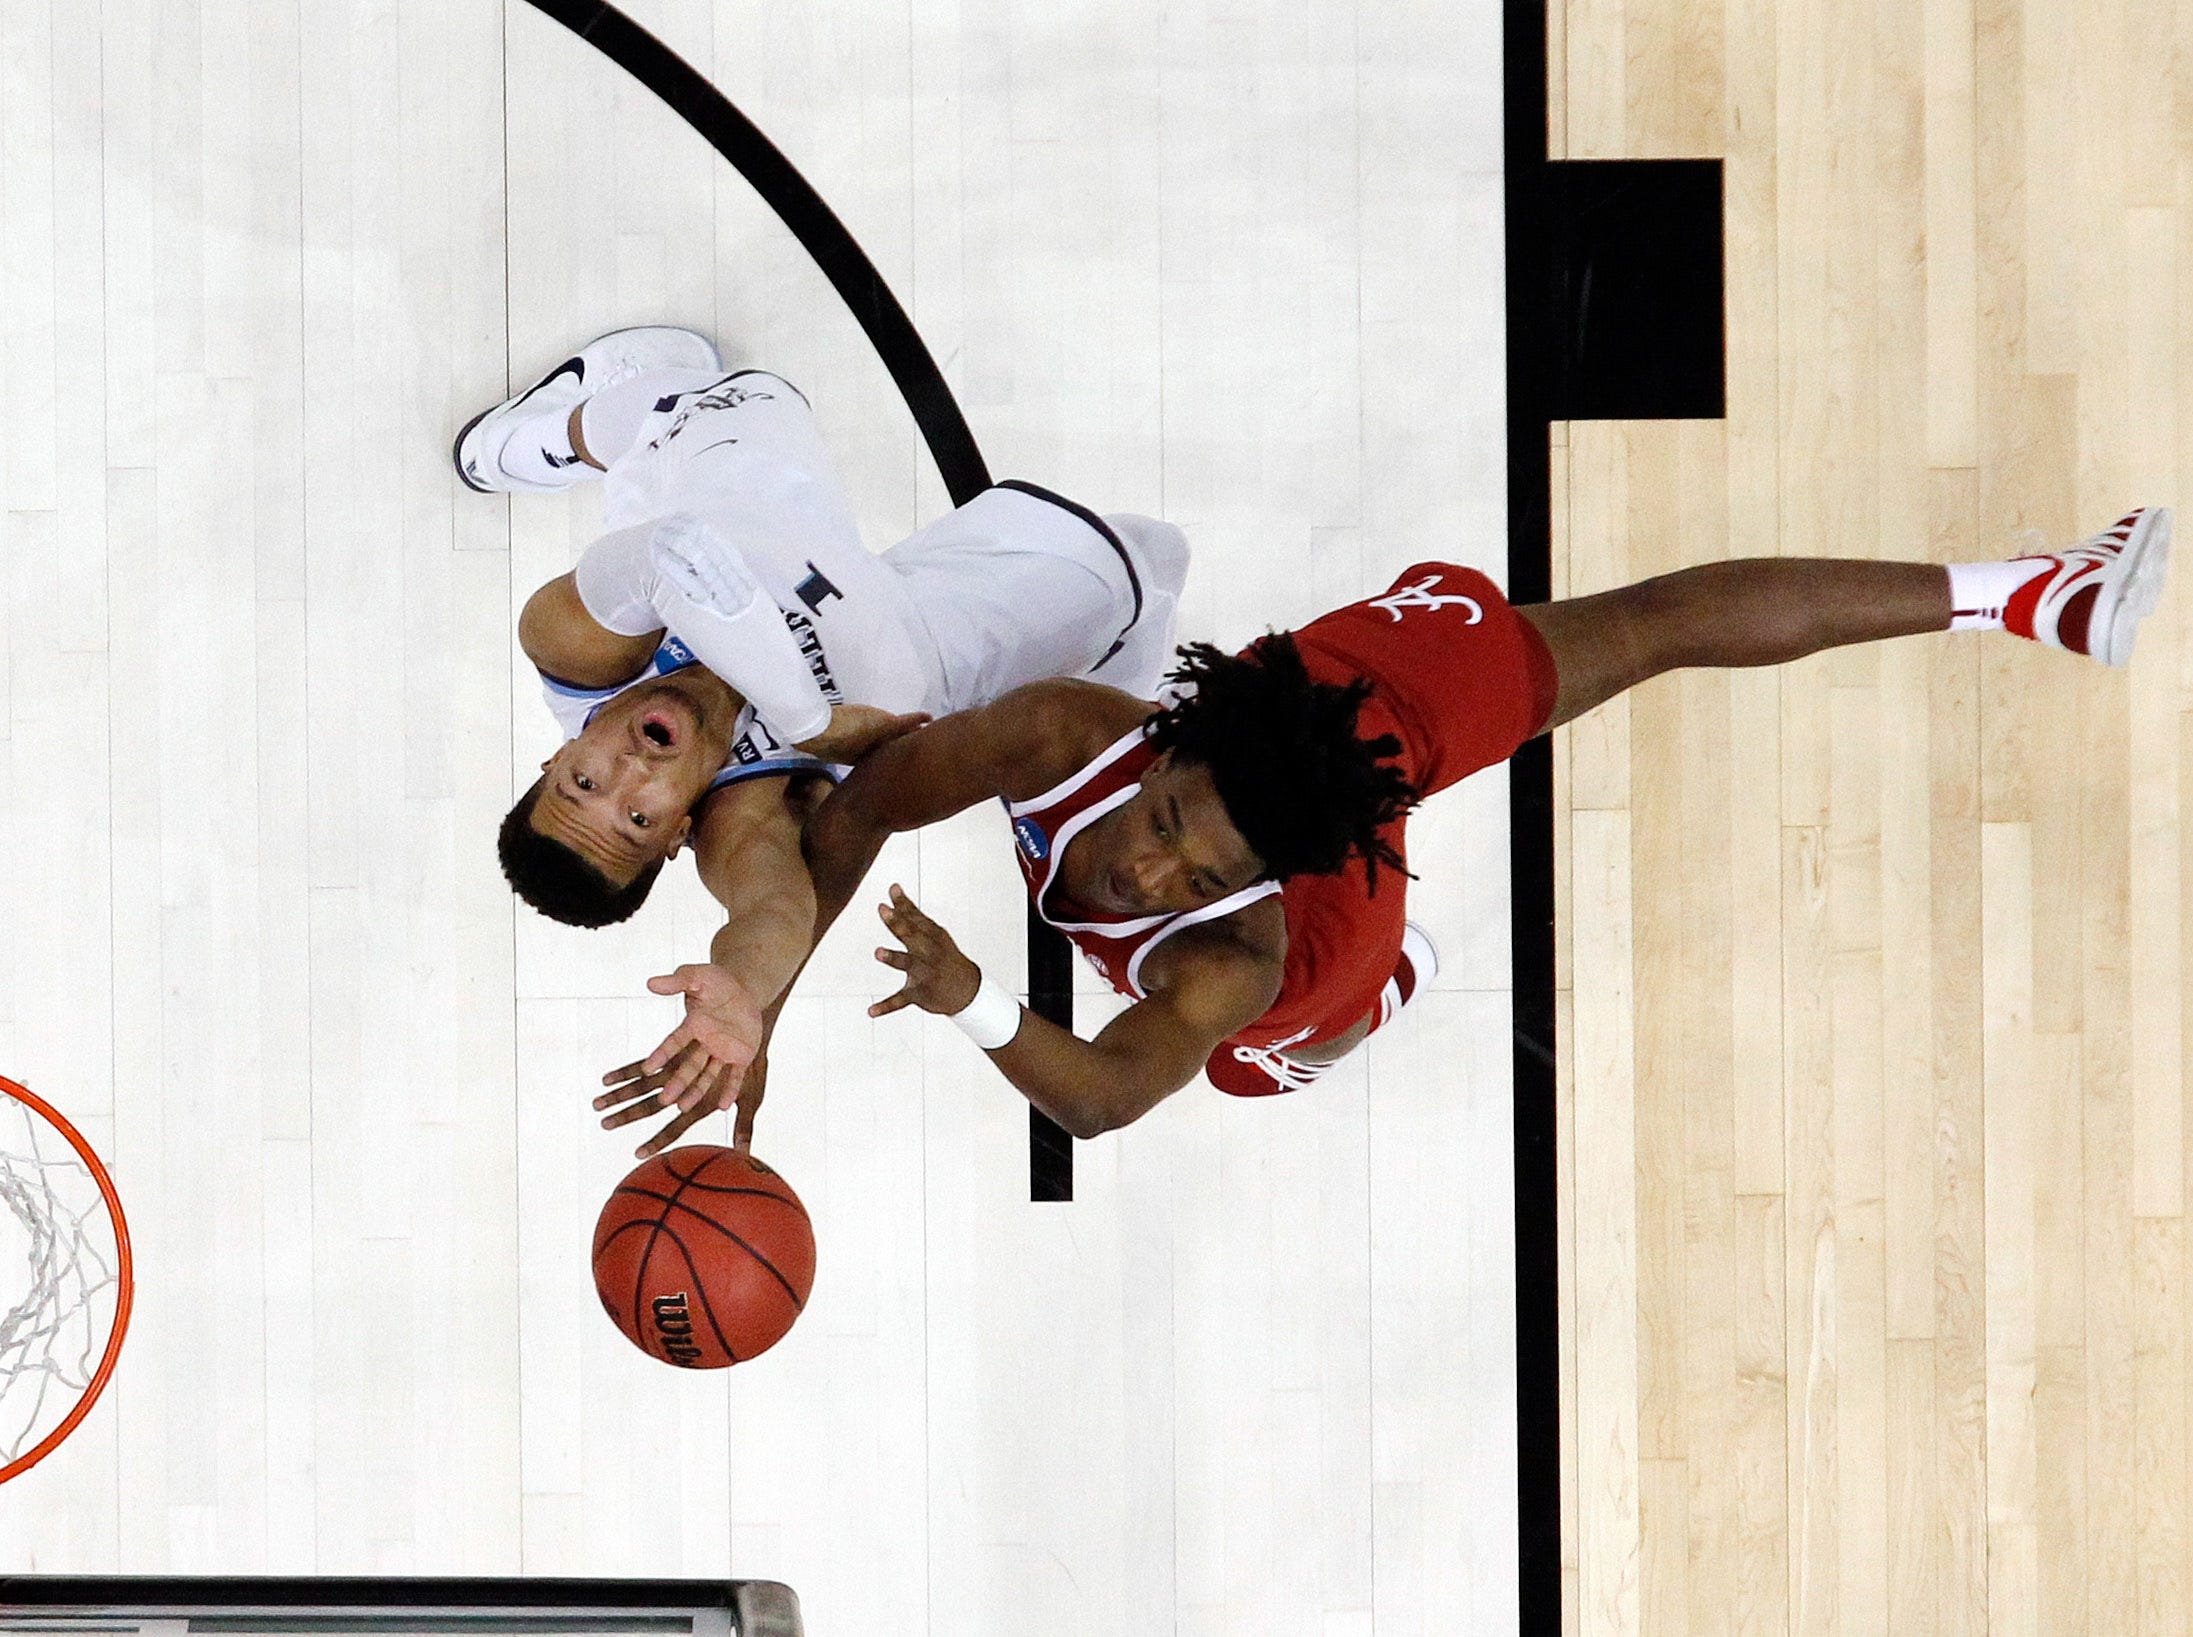 Mar 17, 2018; Pittsburgh, PA, USA;  Alabama Crimson Tide guard Dazon Ingram (12) shoots over Villanova Wildcats guard Jalen Brunson (1) during the first half in the second round of the 2018 NCAA Tournament at PPG Paints Arena. Villanova won 81-58. Mandatory Credit: Charles LeClaire-USA TODAY Sports